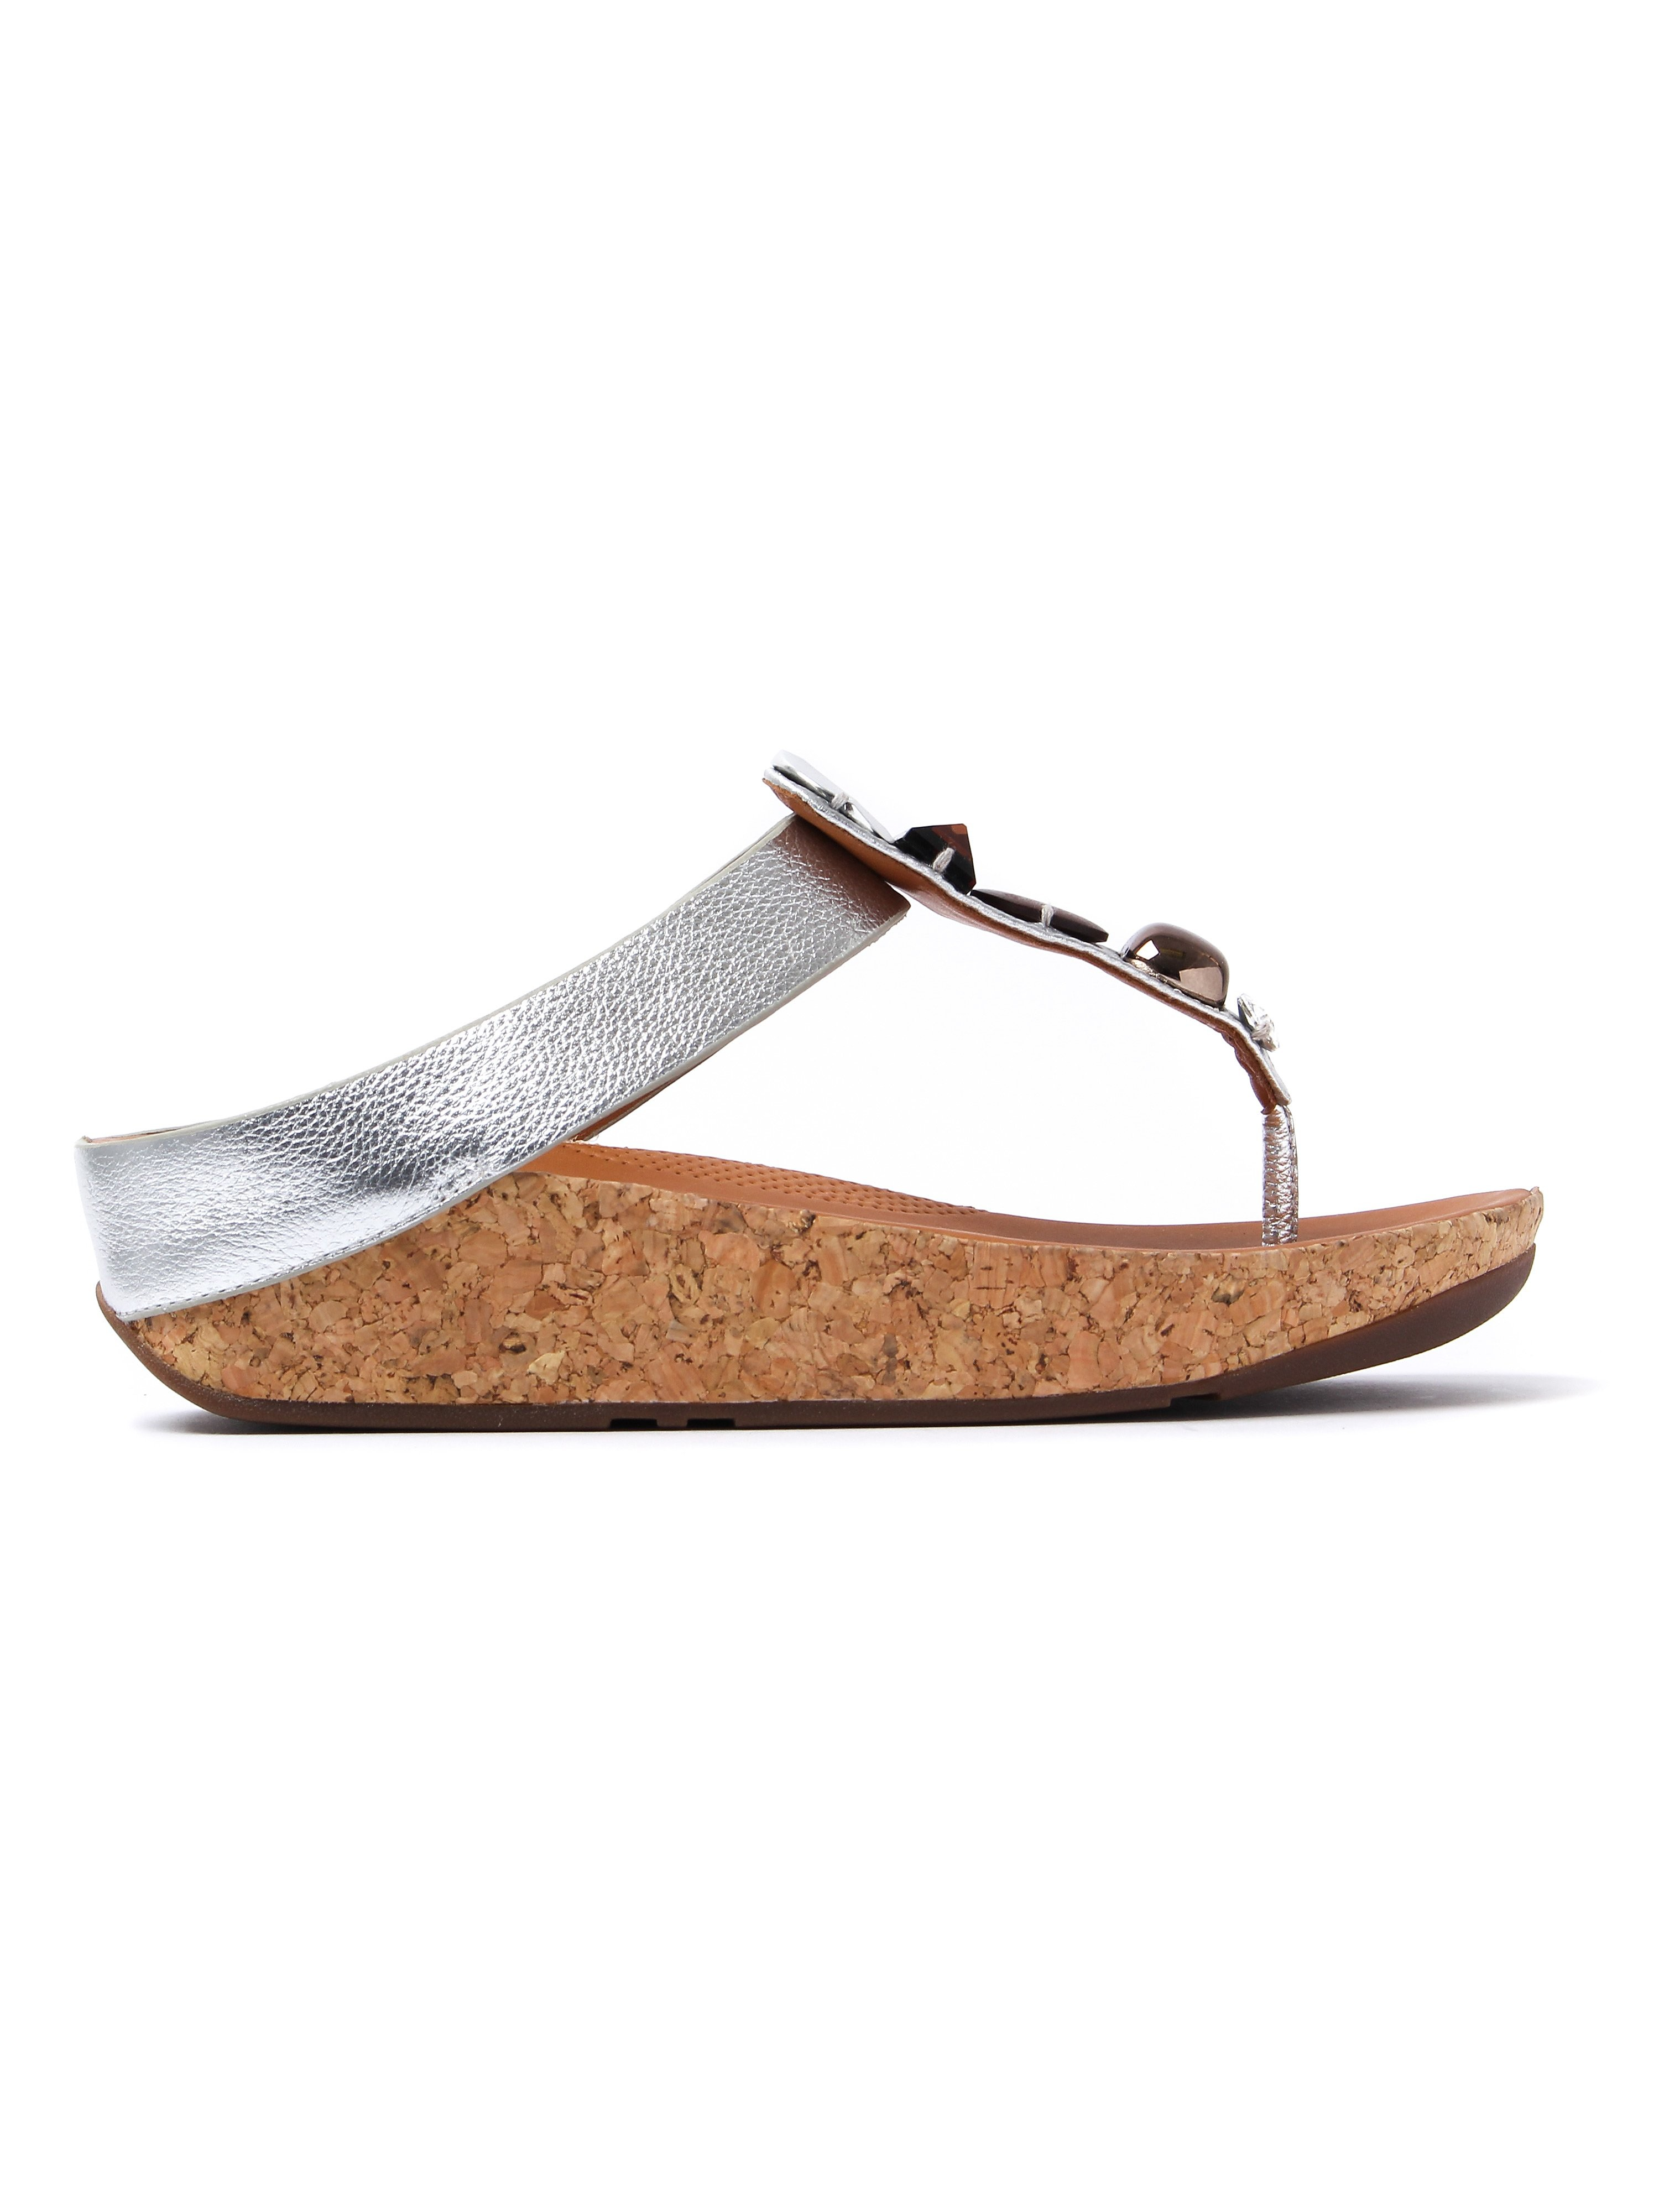 FitFlop Women's Jeweley Toe-Post Sandals - Silver